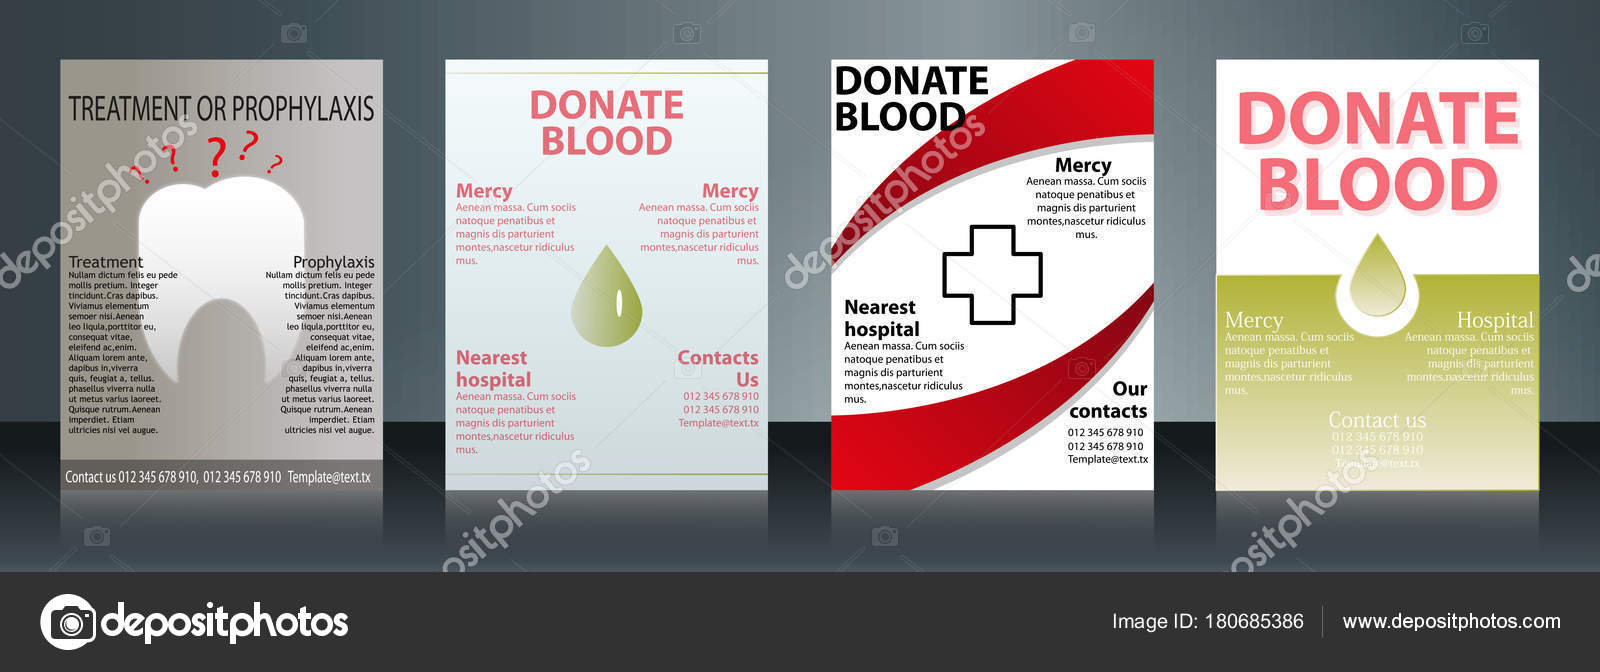 collection of stylish flyers templates or banners for medical and